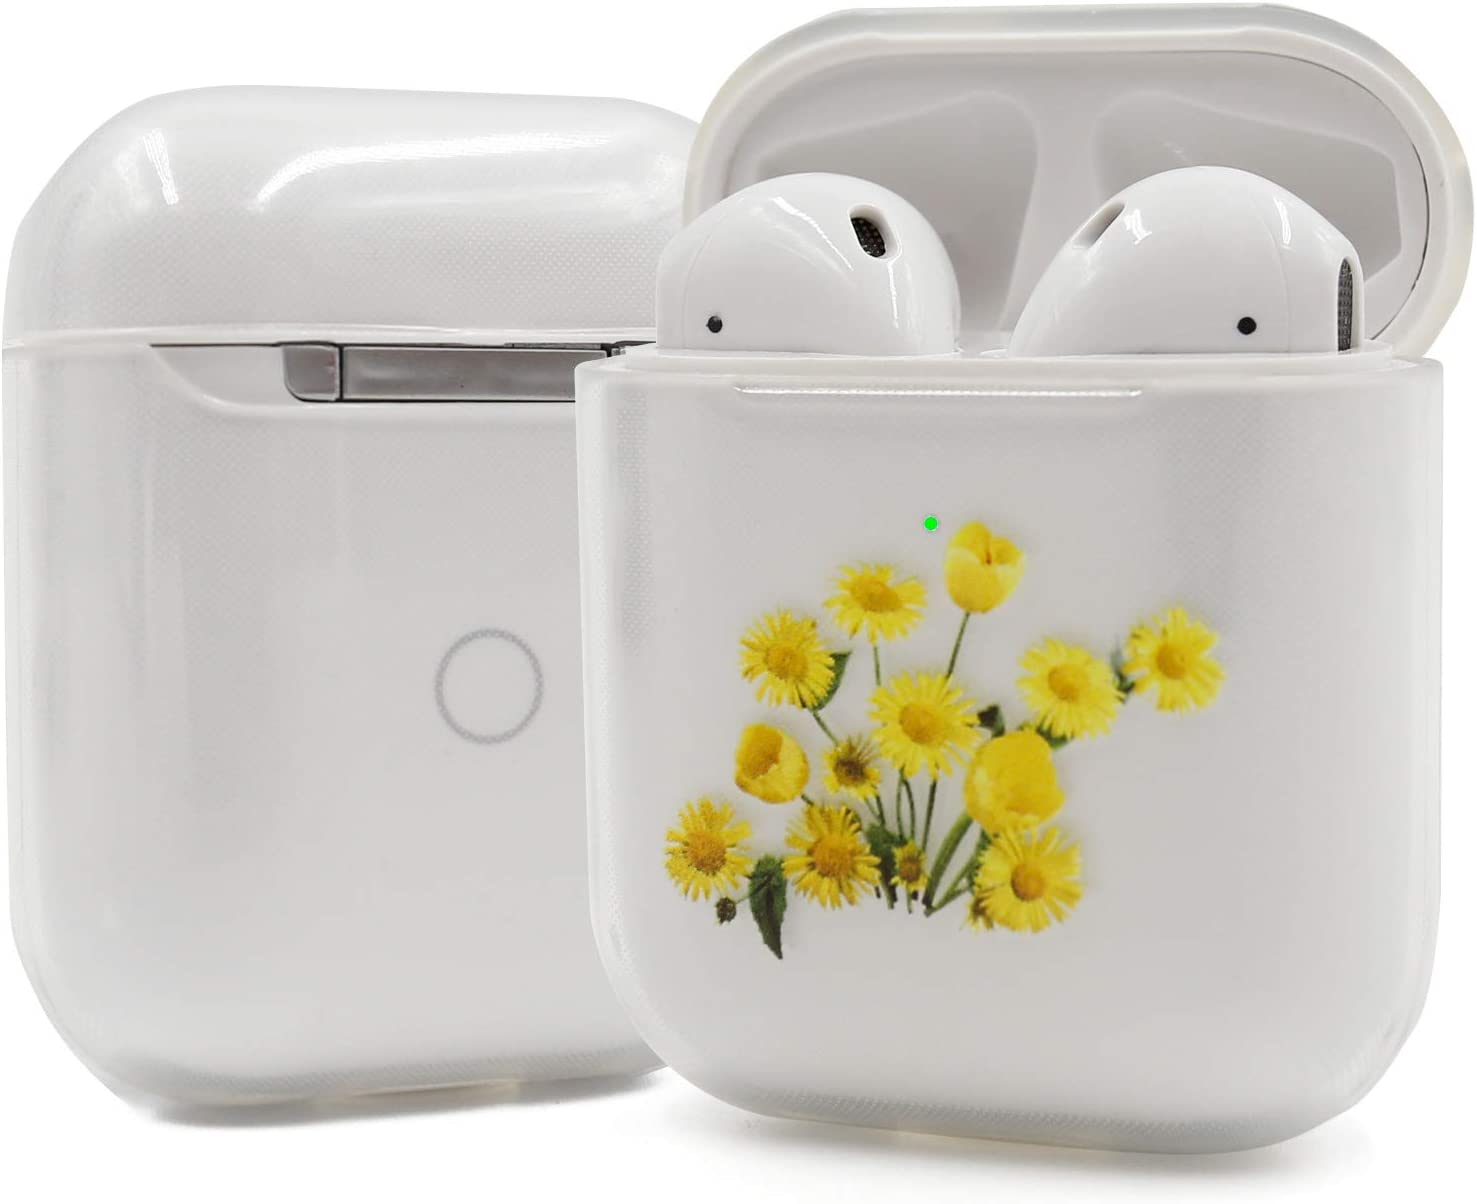 Clear AirPods Case, TPU AirPod Case Cover for Apple AirPods 2&1 Charging Case, Cute Bouquet Tulip Flower Yellow Flowers AirPods Soft Protective Case for Girls Teenages